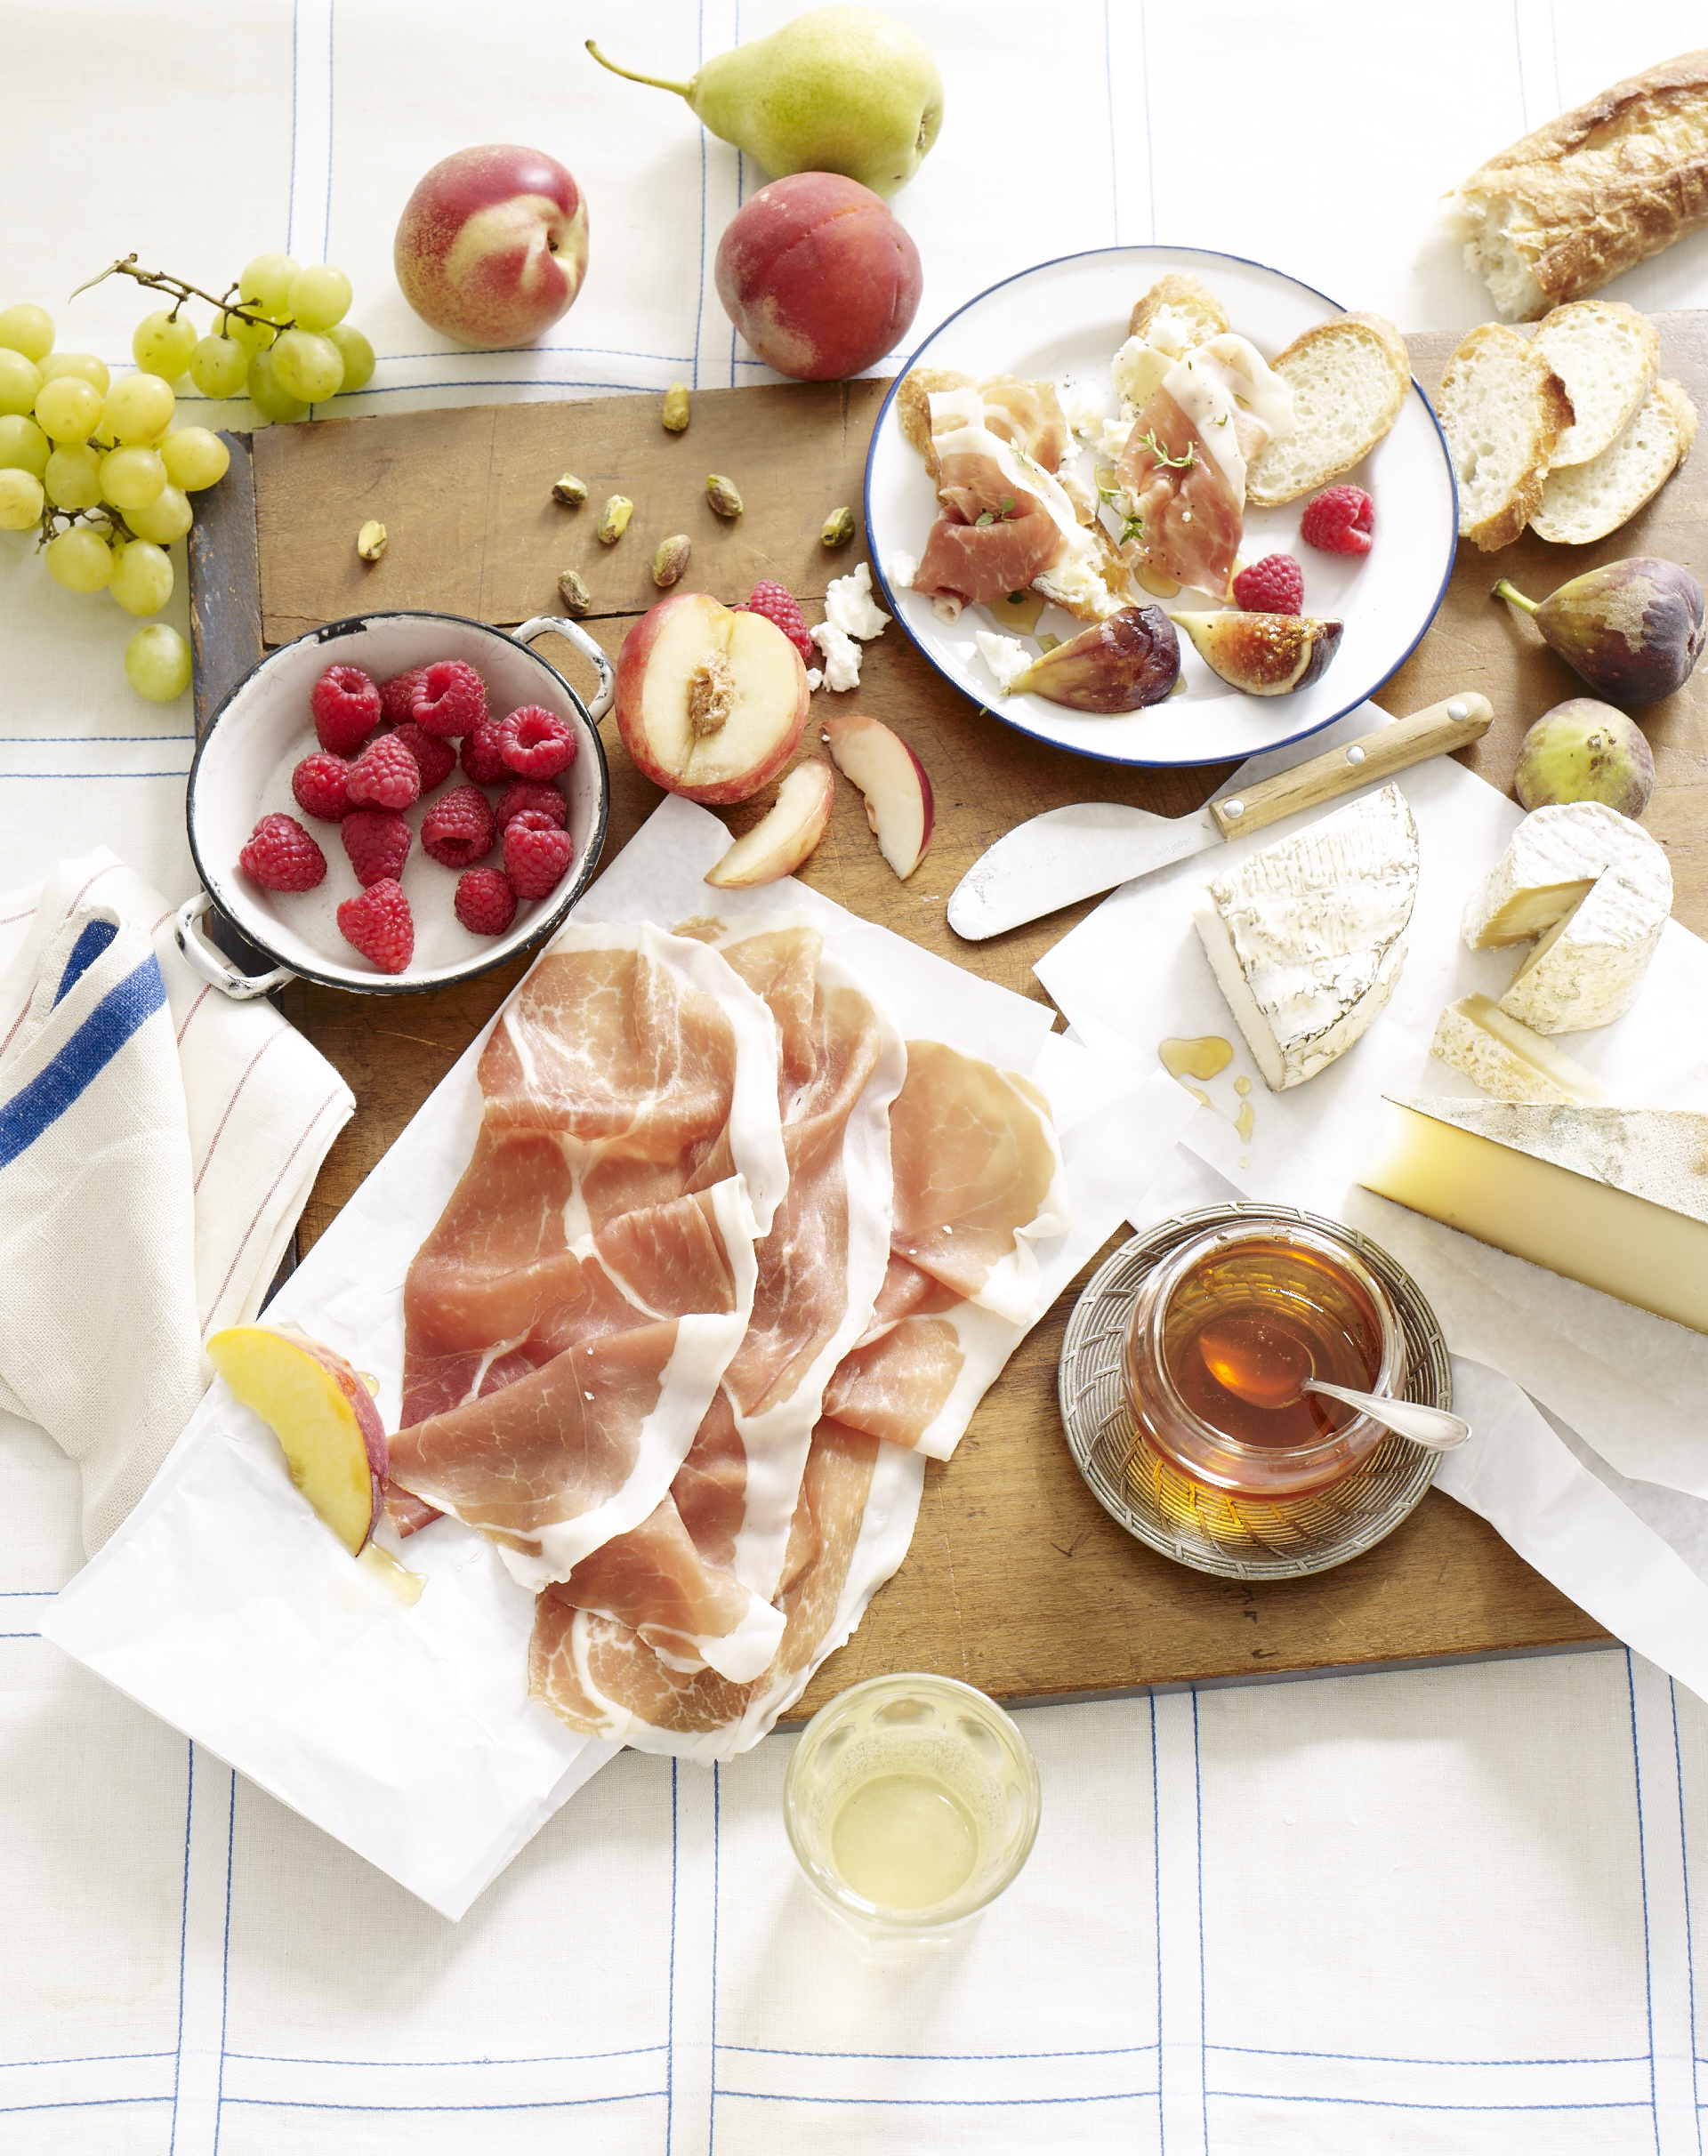 Picnic Spread with Prosciutto and Cheese